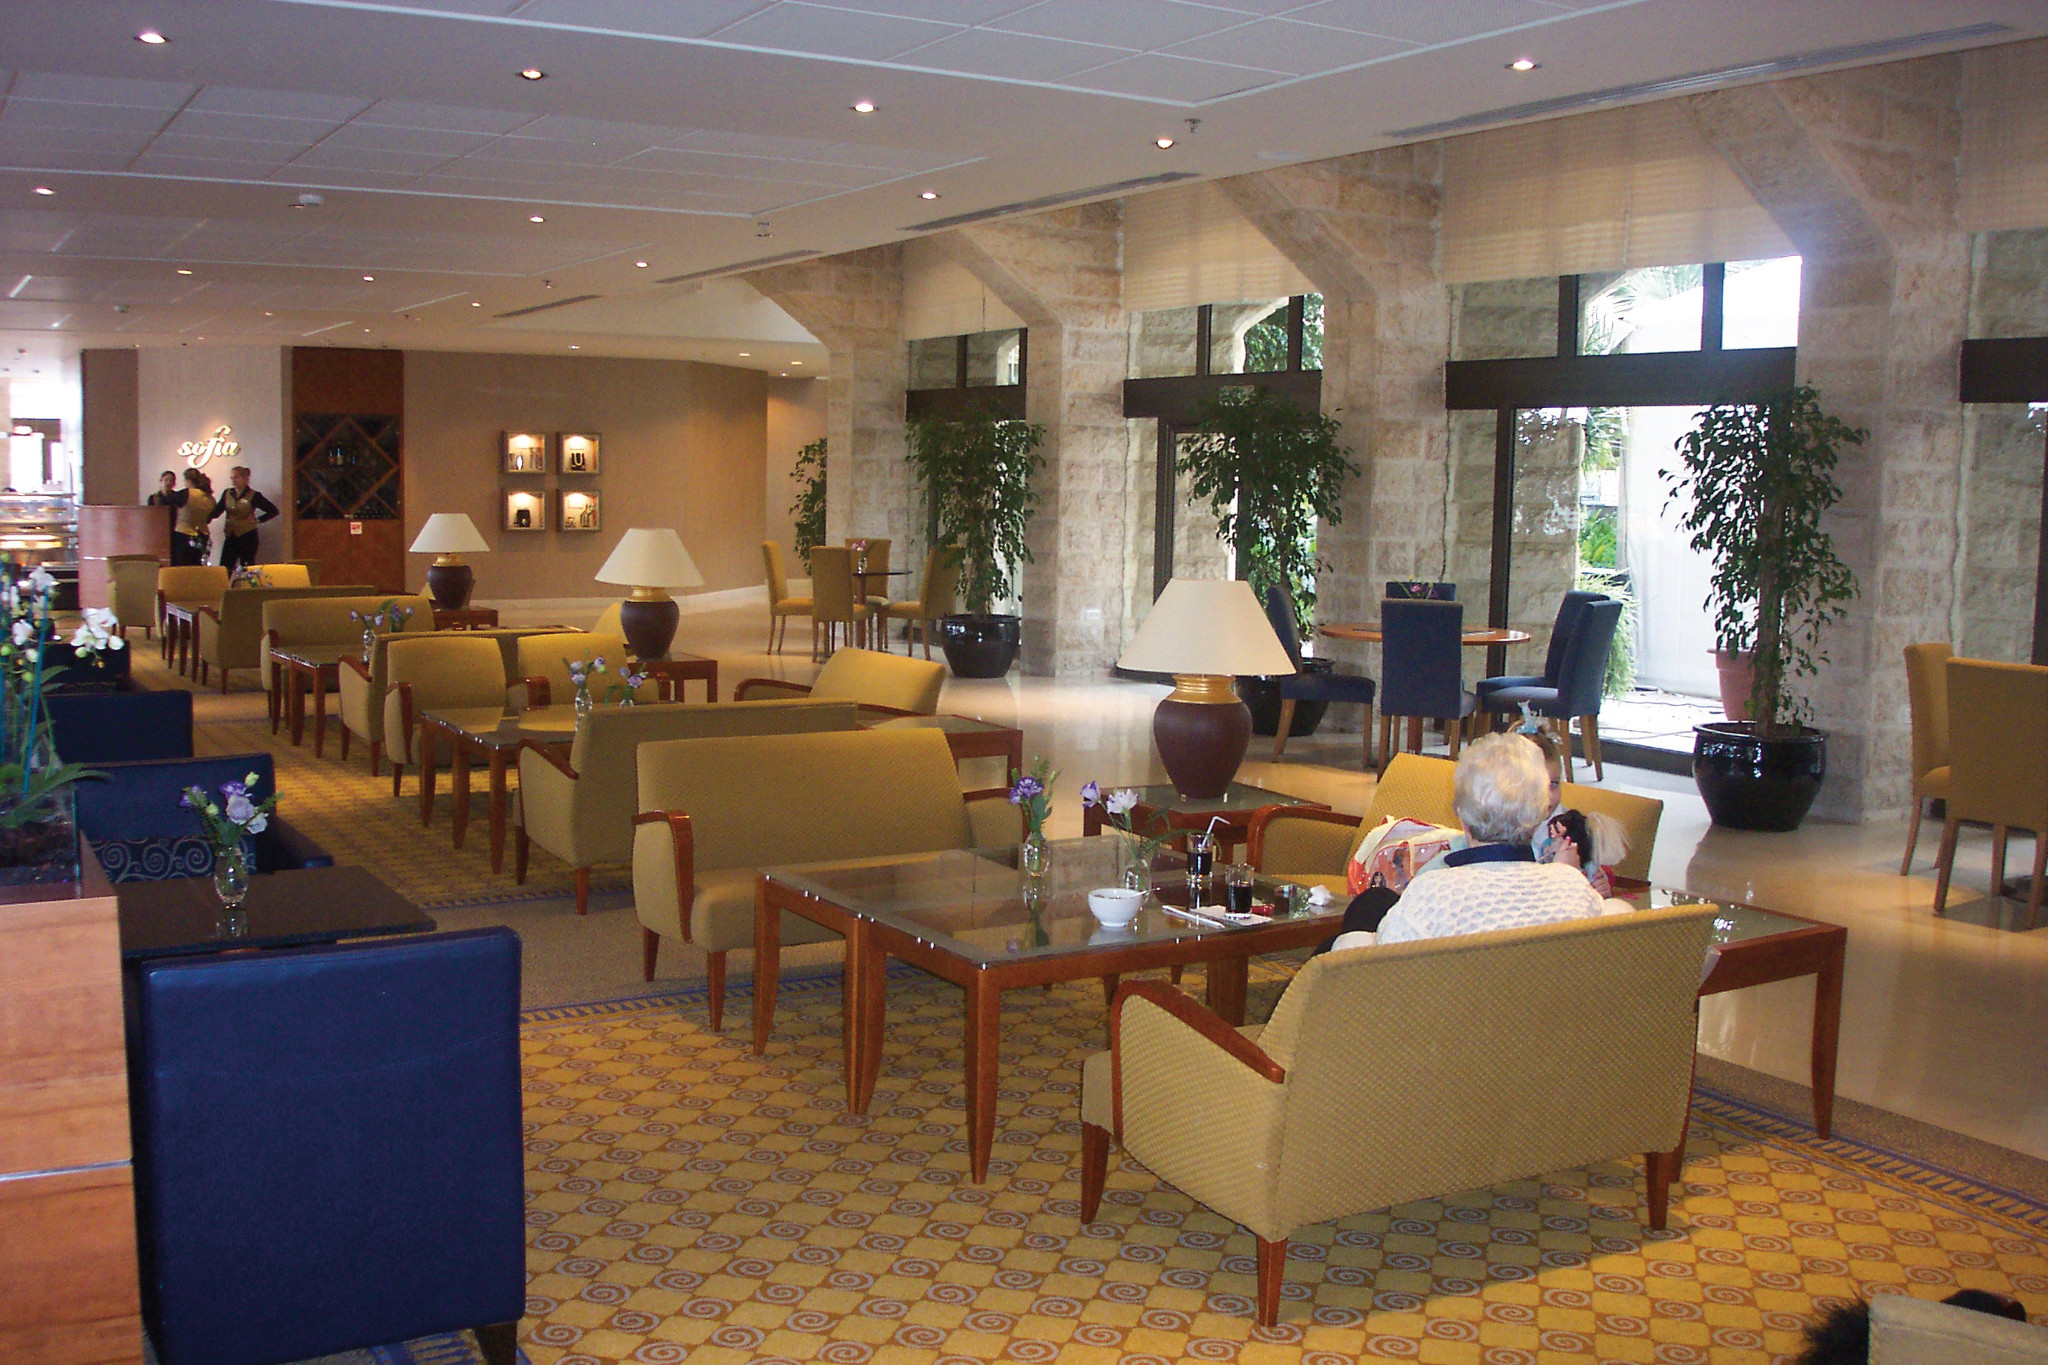 The Inbal Hotel Jerusalem